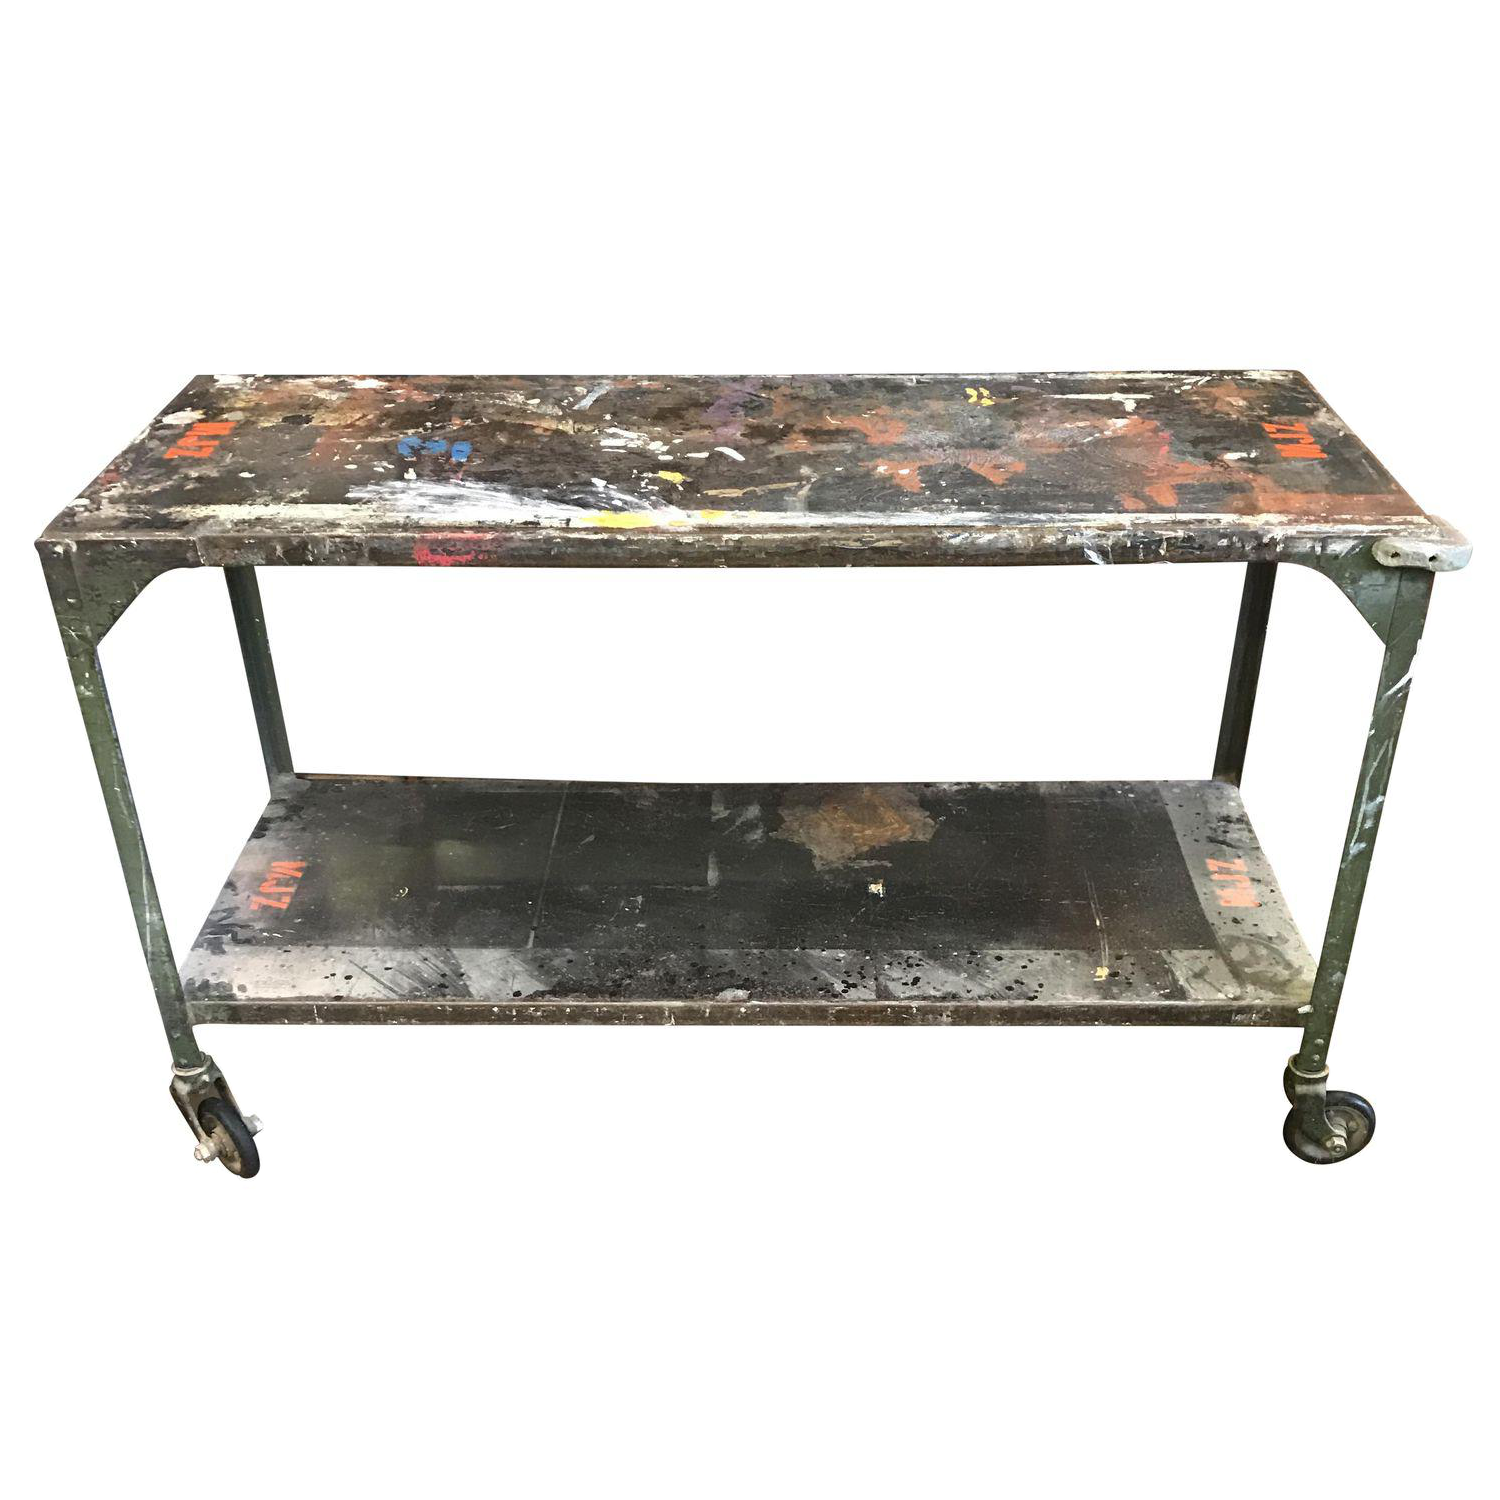 vintage industrial console table on casters chairish. Black Bedroom Furniture Sets. Home Design Ideas